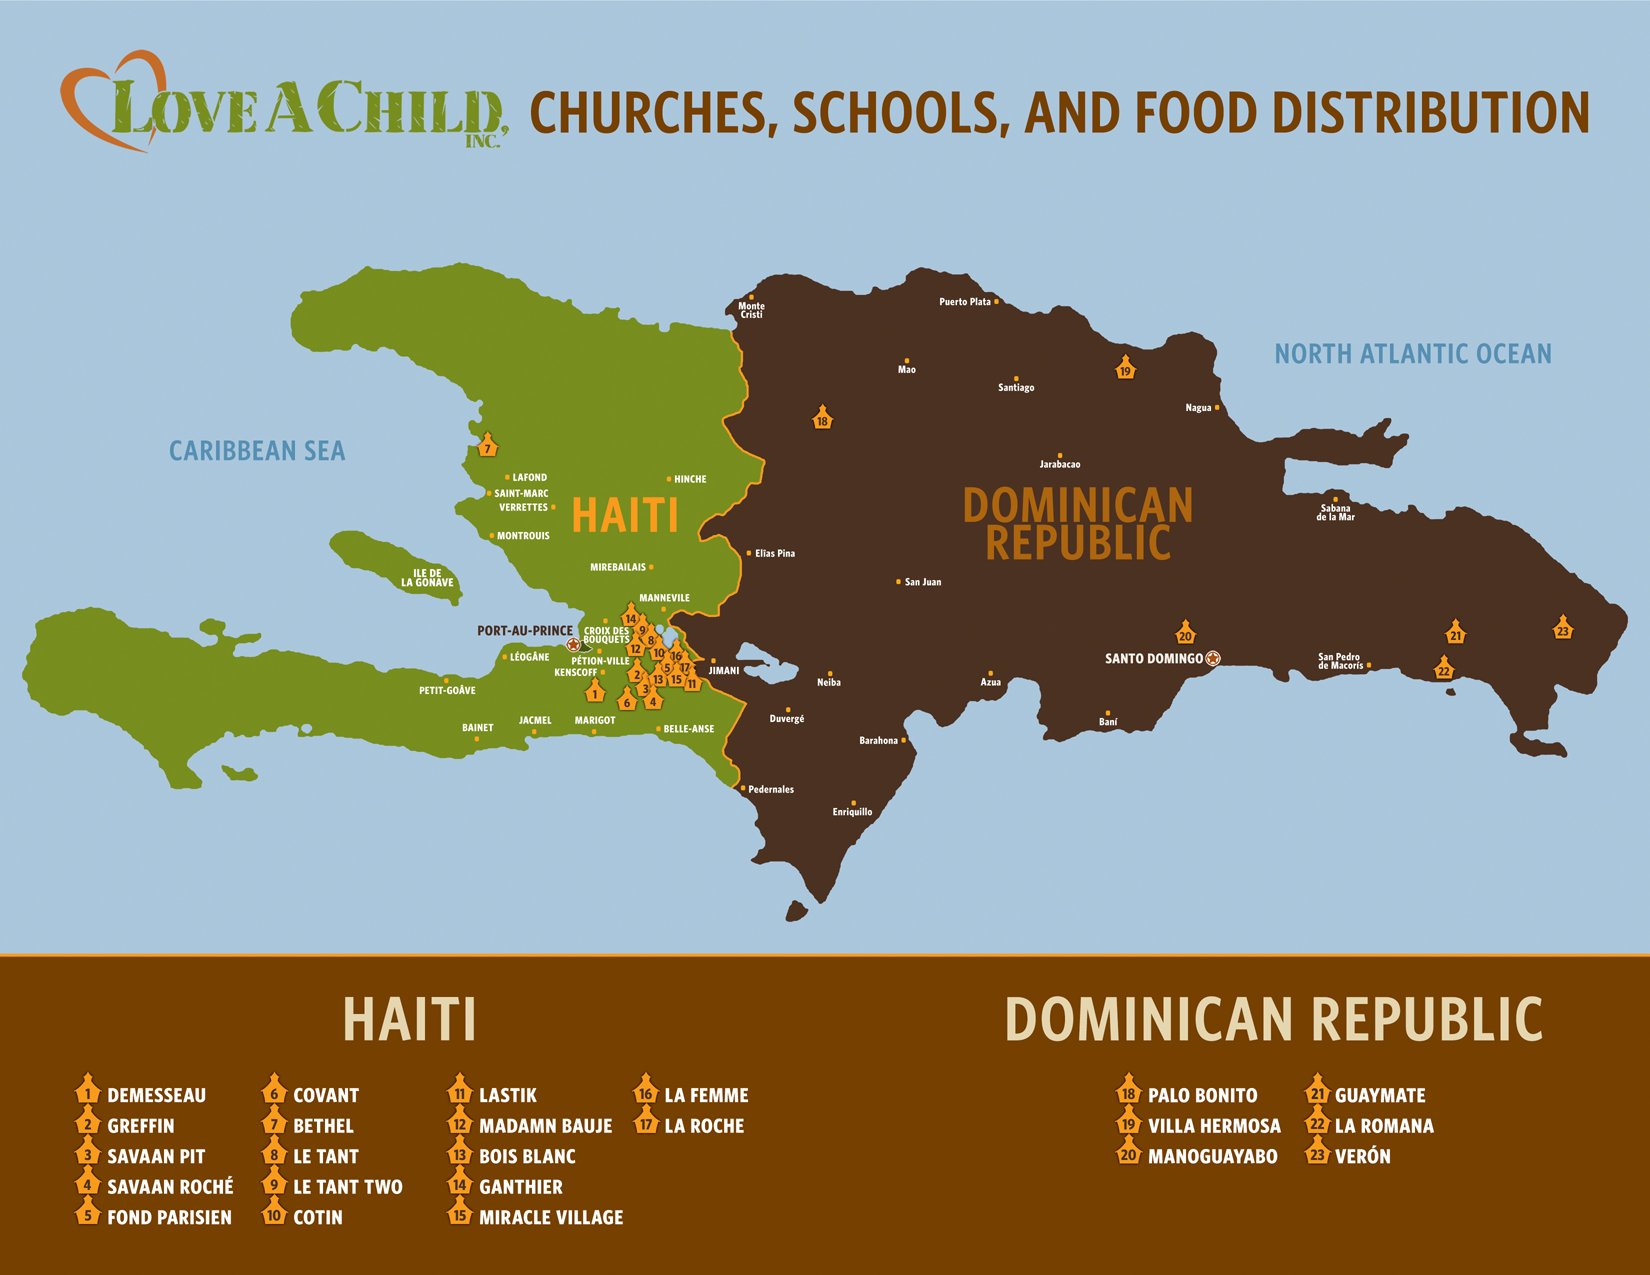 Love A Child's churches and schools in Haiti and the Dominican Republic.